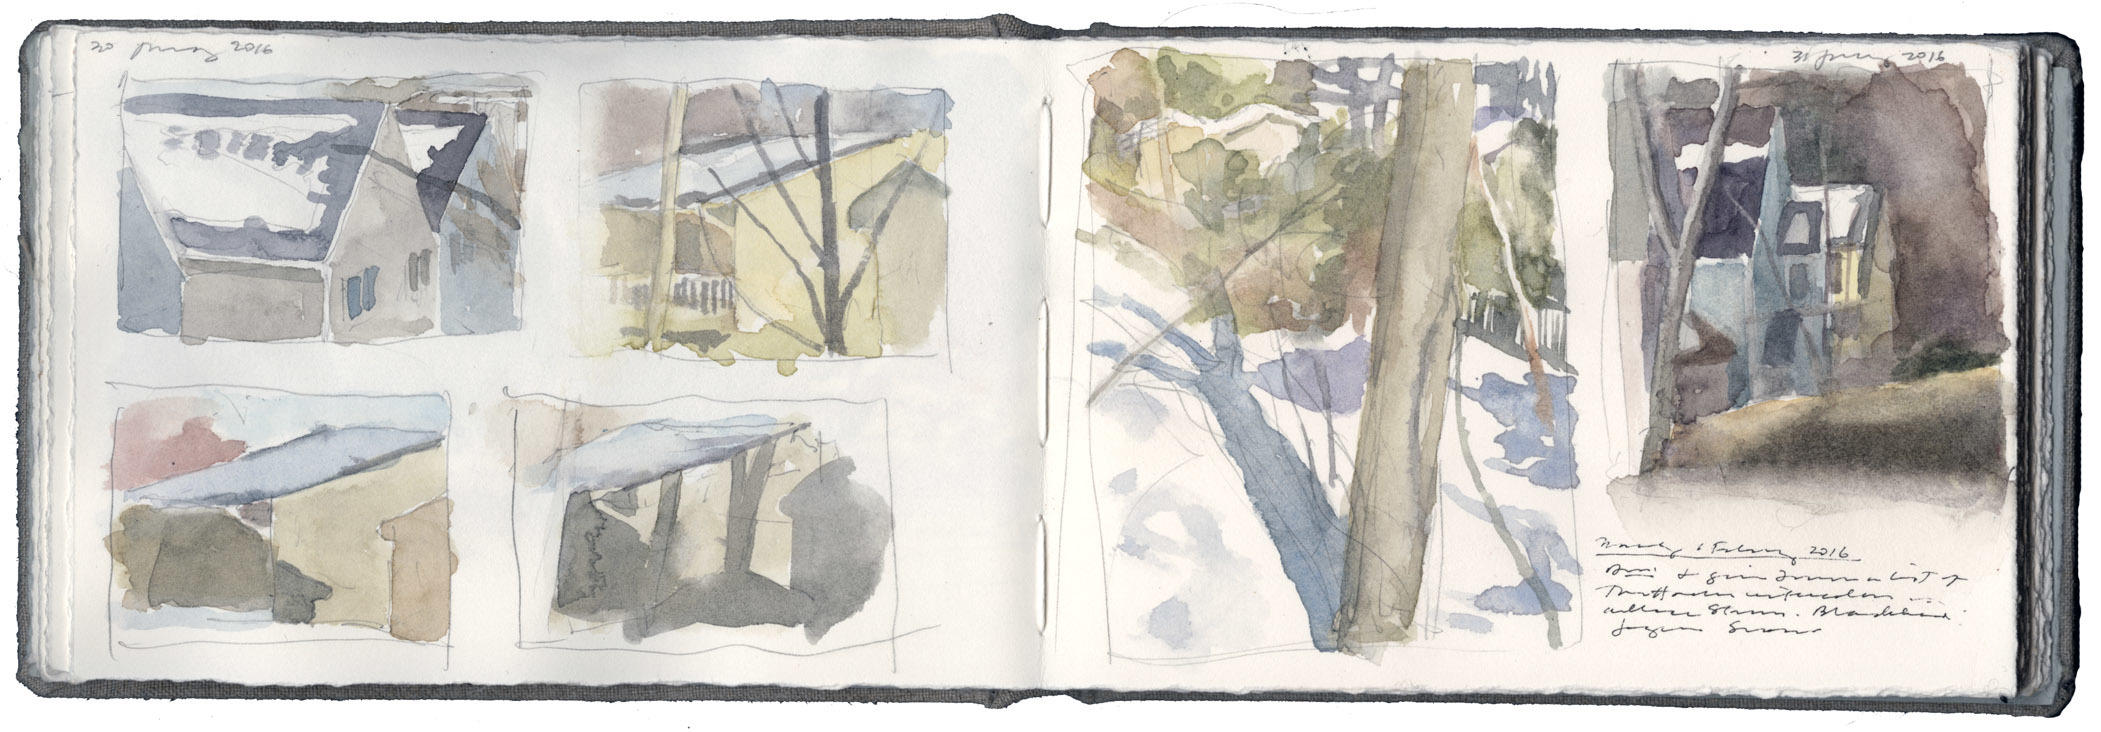 Studies of Melting Snow image